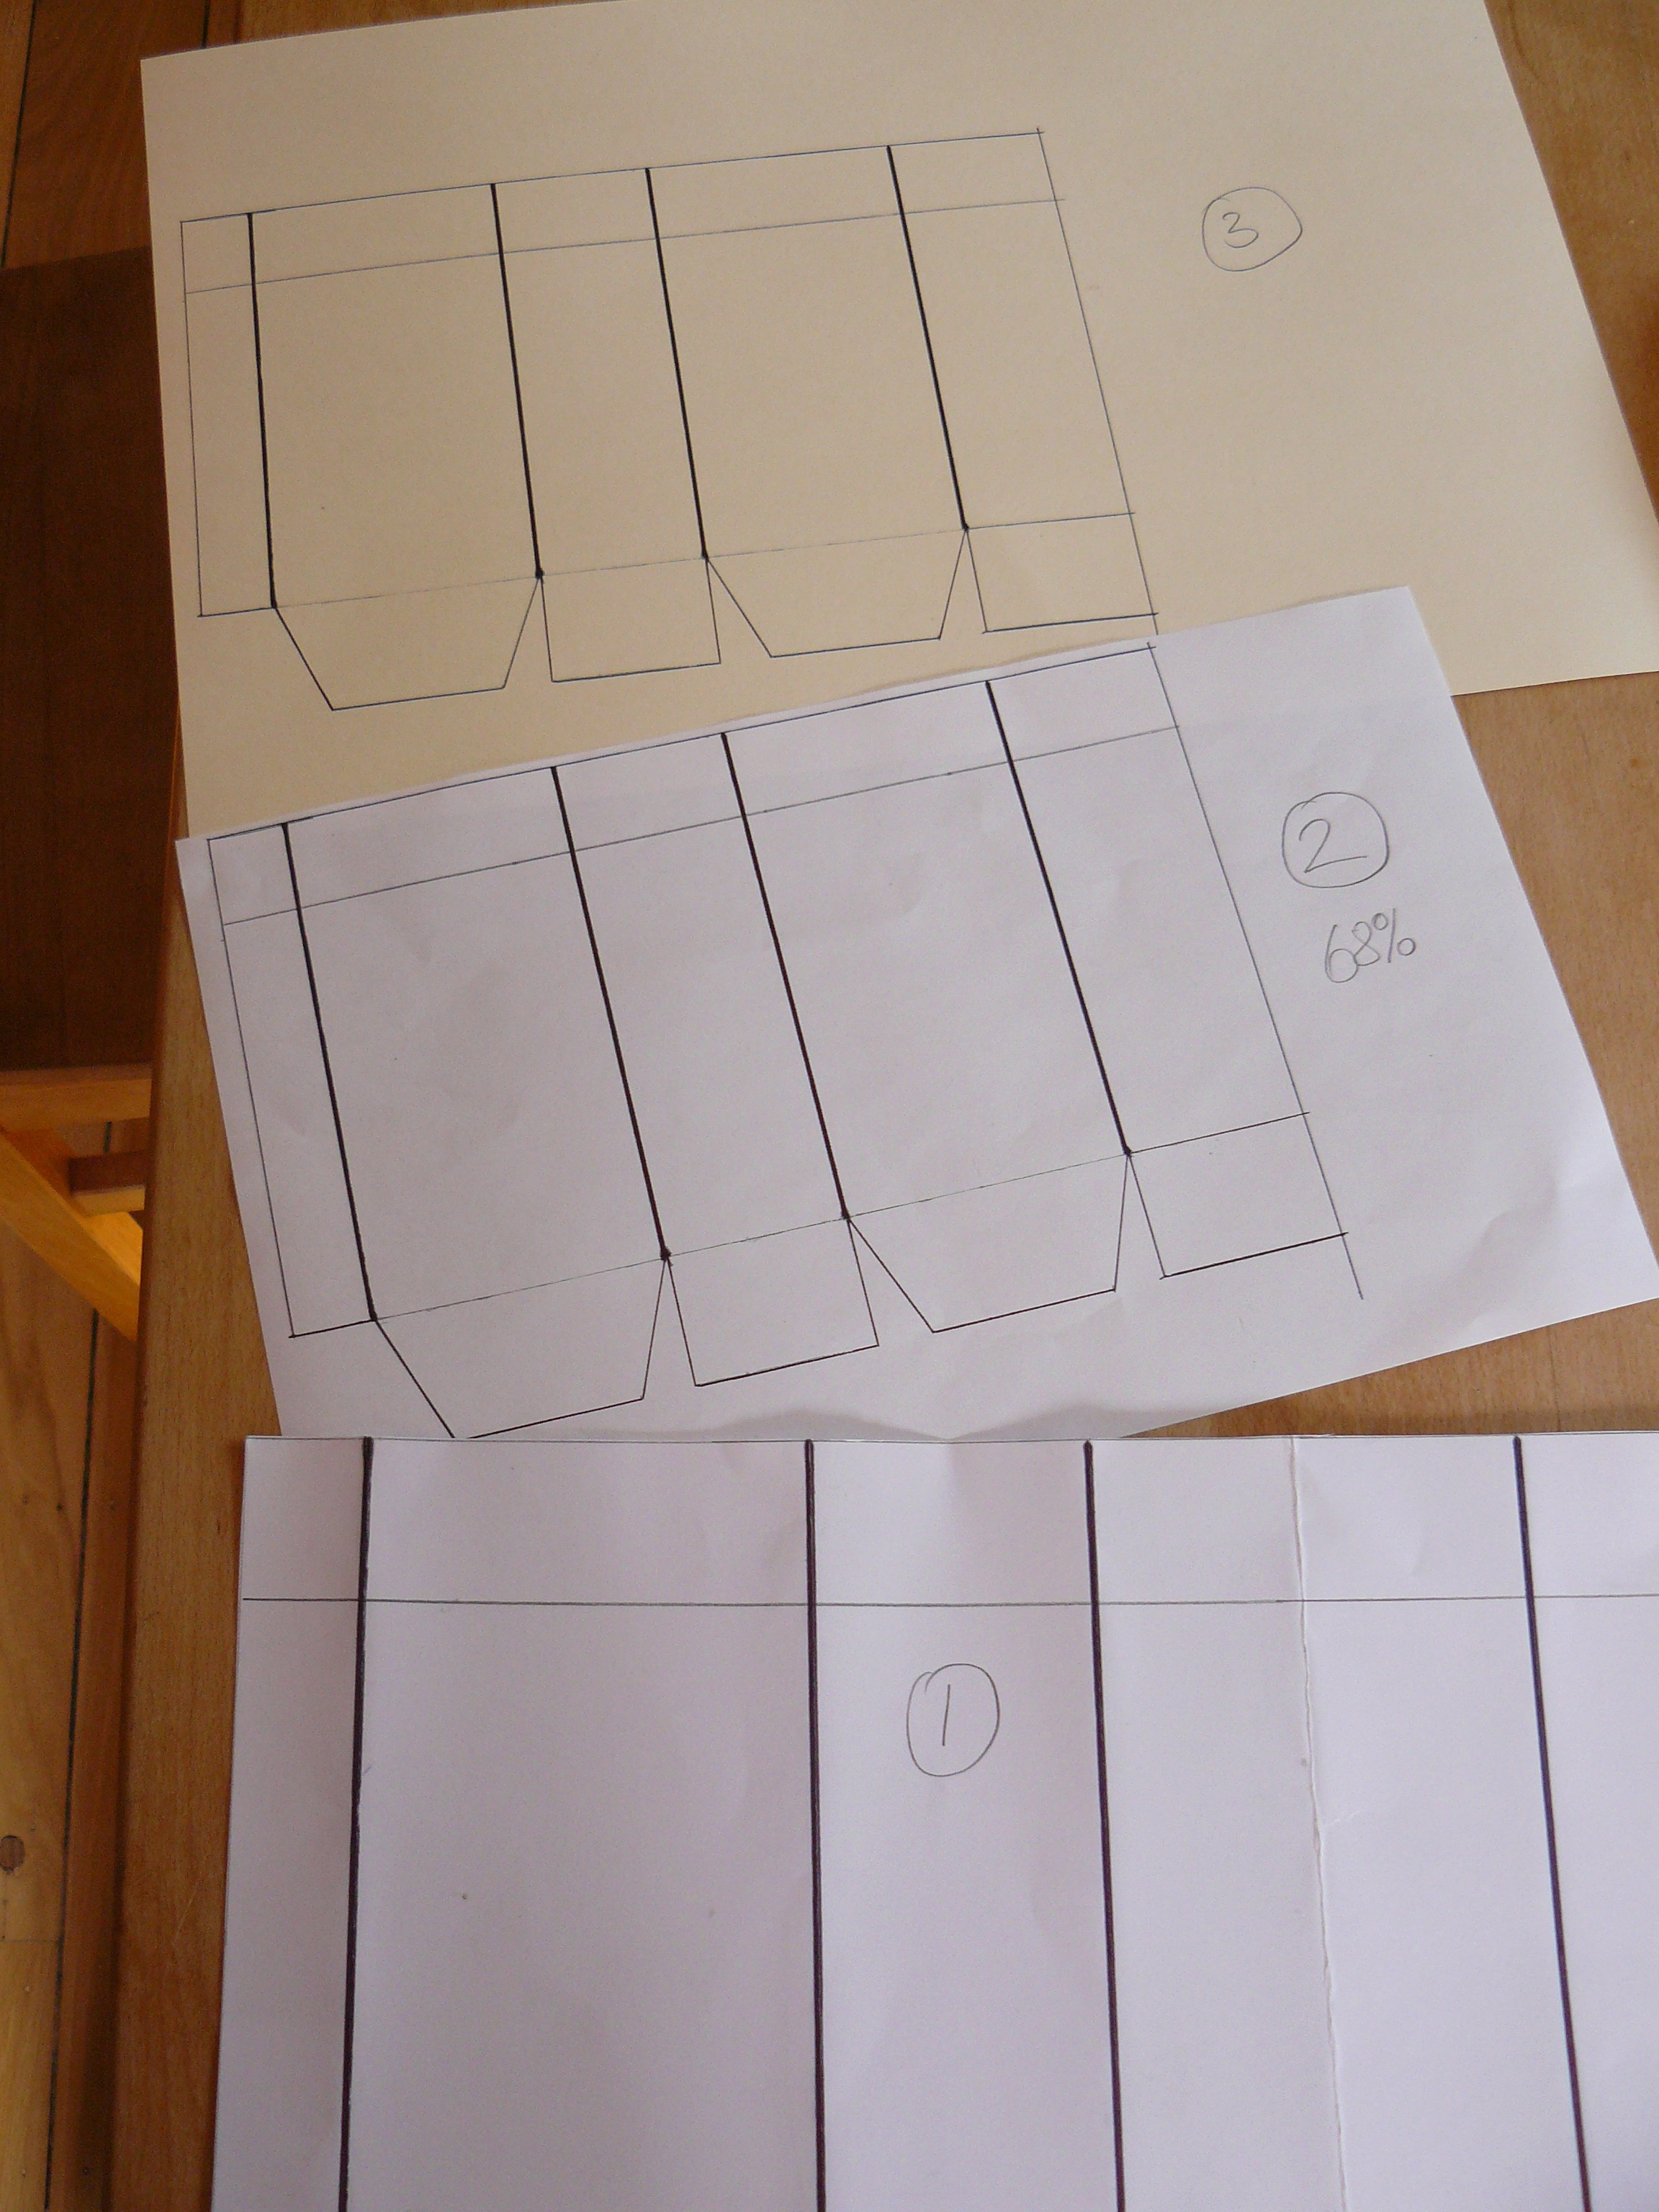 Template paper bag klara luna other than this template you will need your calendar page or any other thick paper wrapping paper an actual brown paper bag etc a pair of scissors jeuxipadfo Gallery